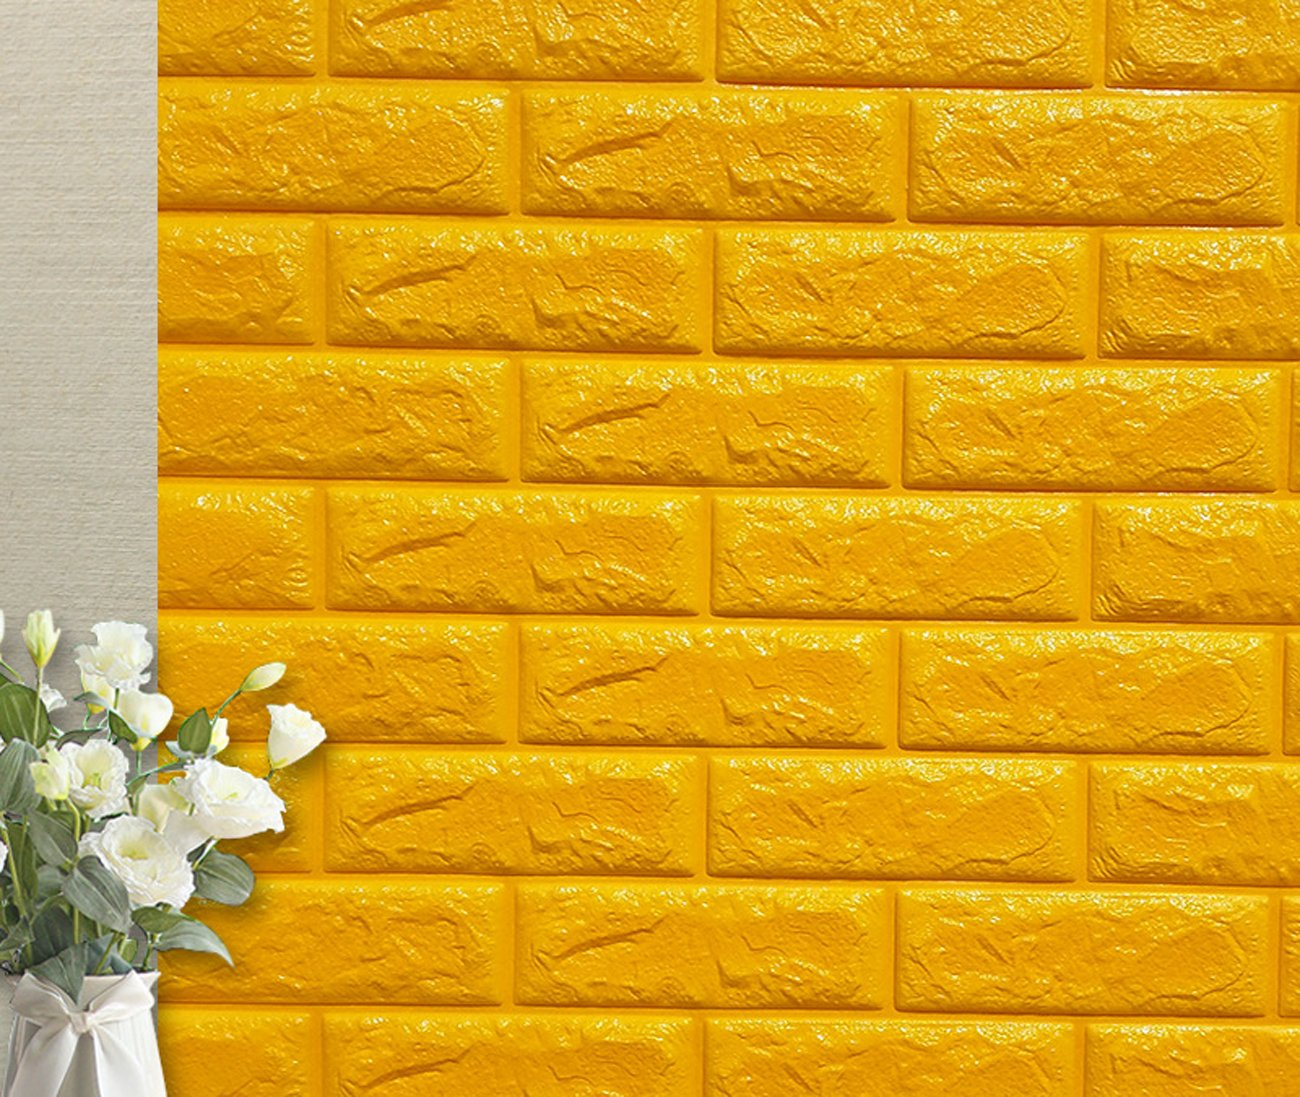 Amazon.com: YIHOPAINTI 3D Brick Wall Stickers Self-adhesive Wall ...